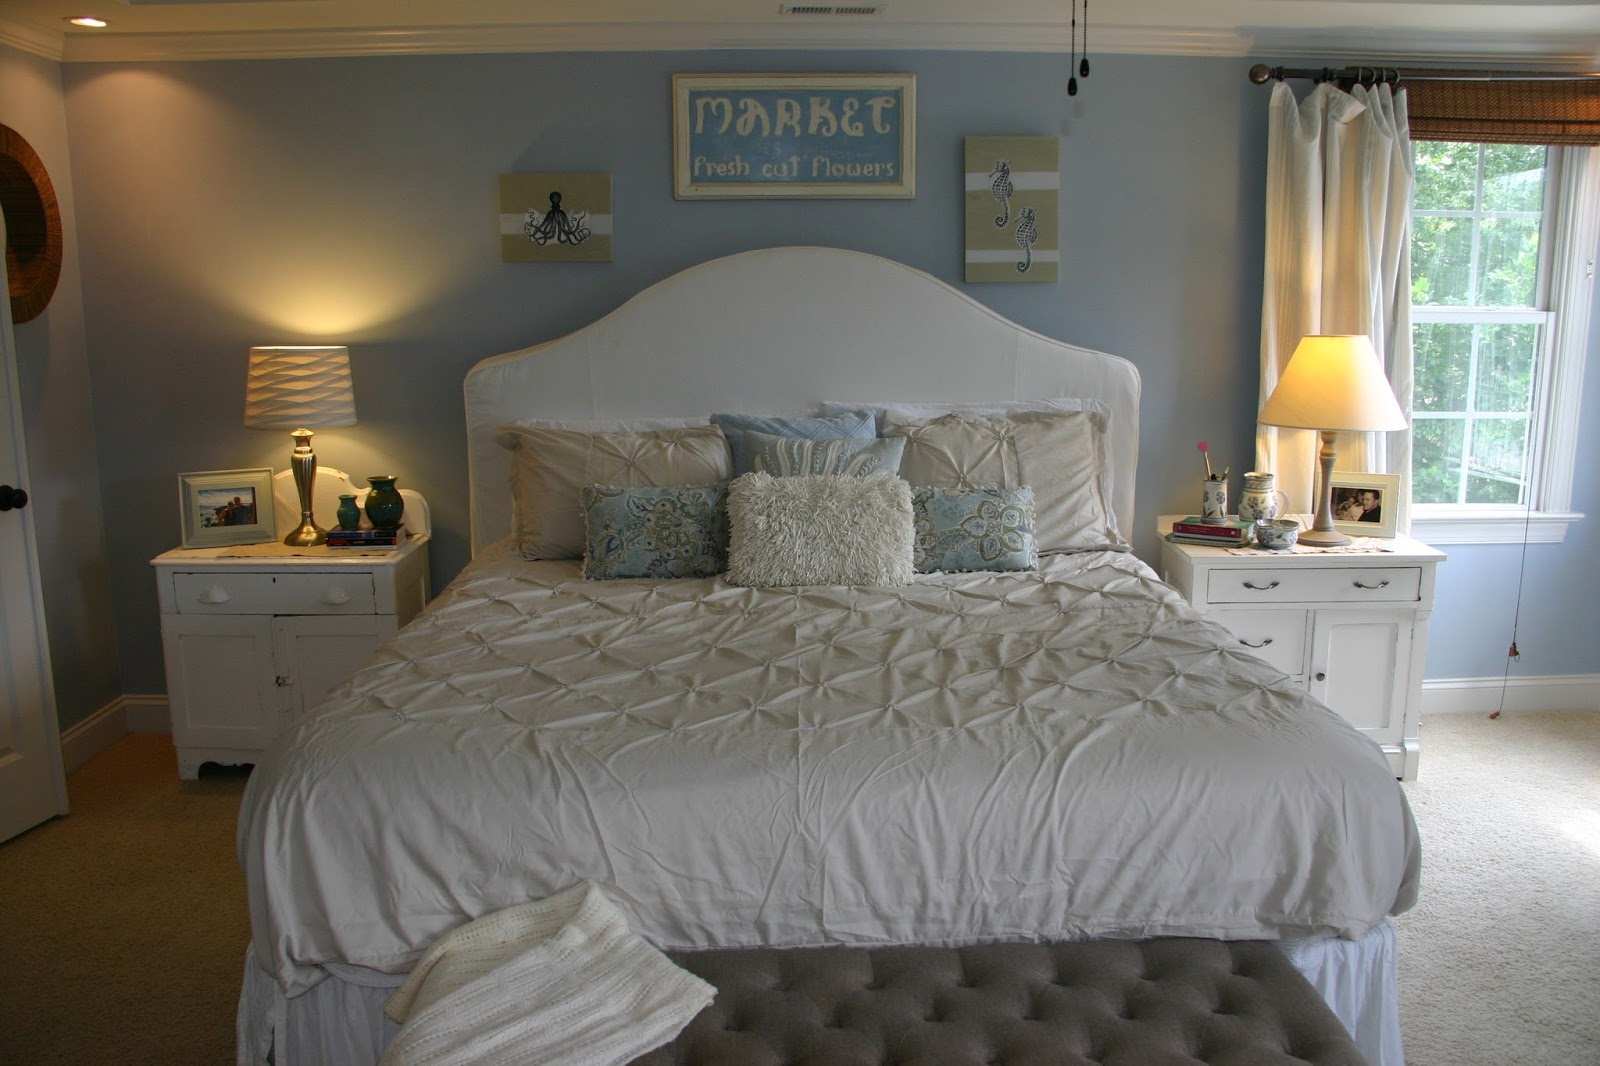 designs for master bedroom cottage blue designs master bedroom reveal 15145 | 2015 07 28%2B01.34.30